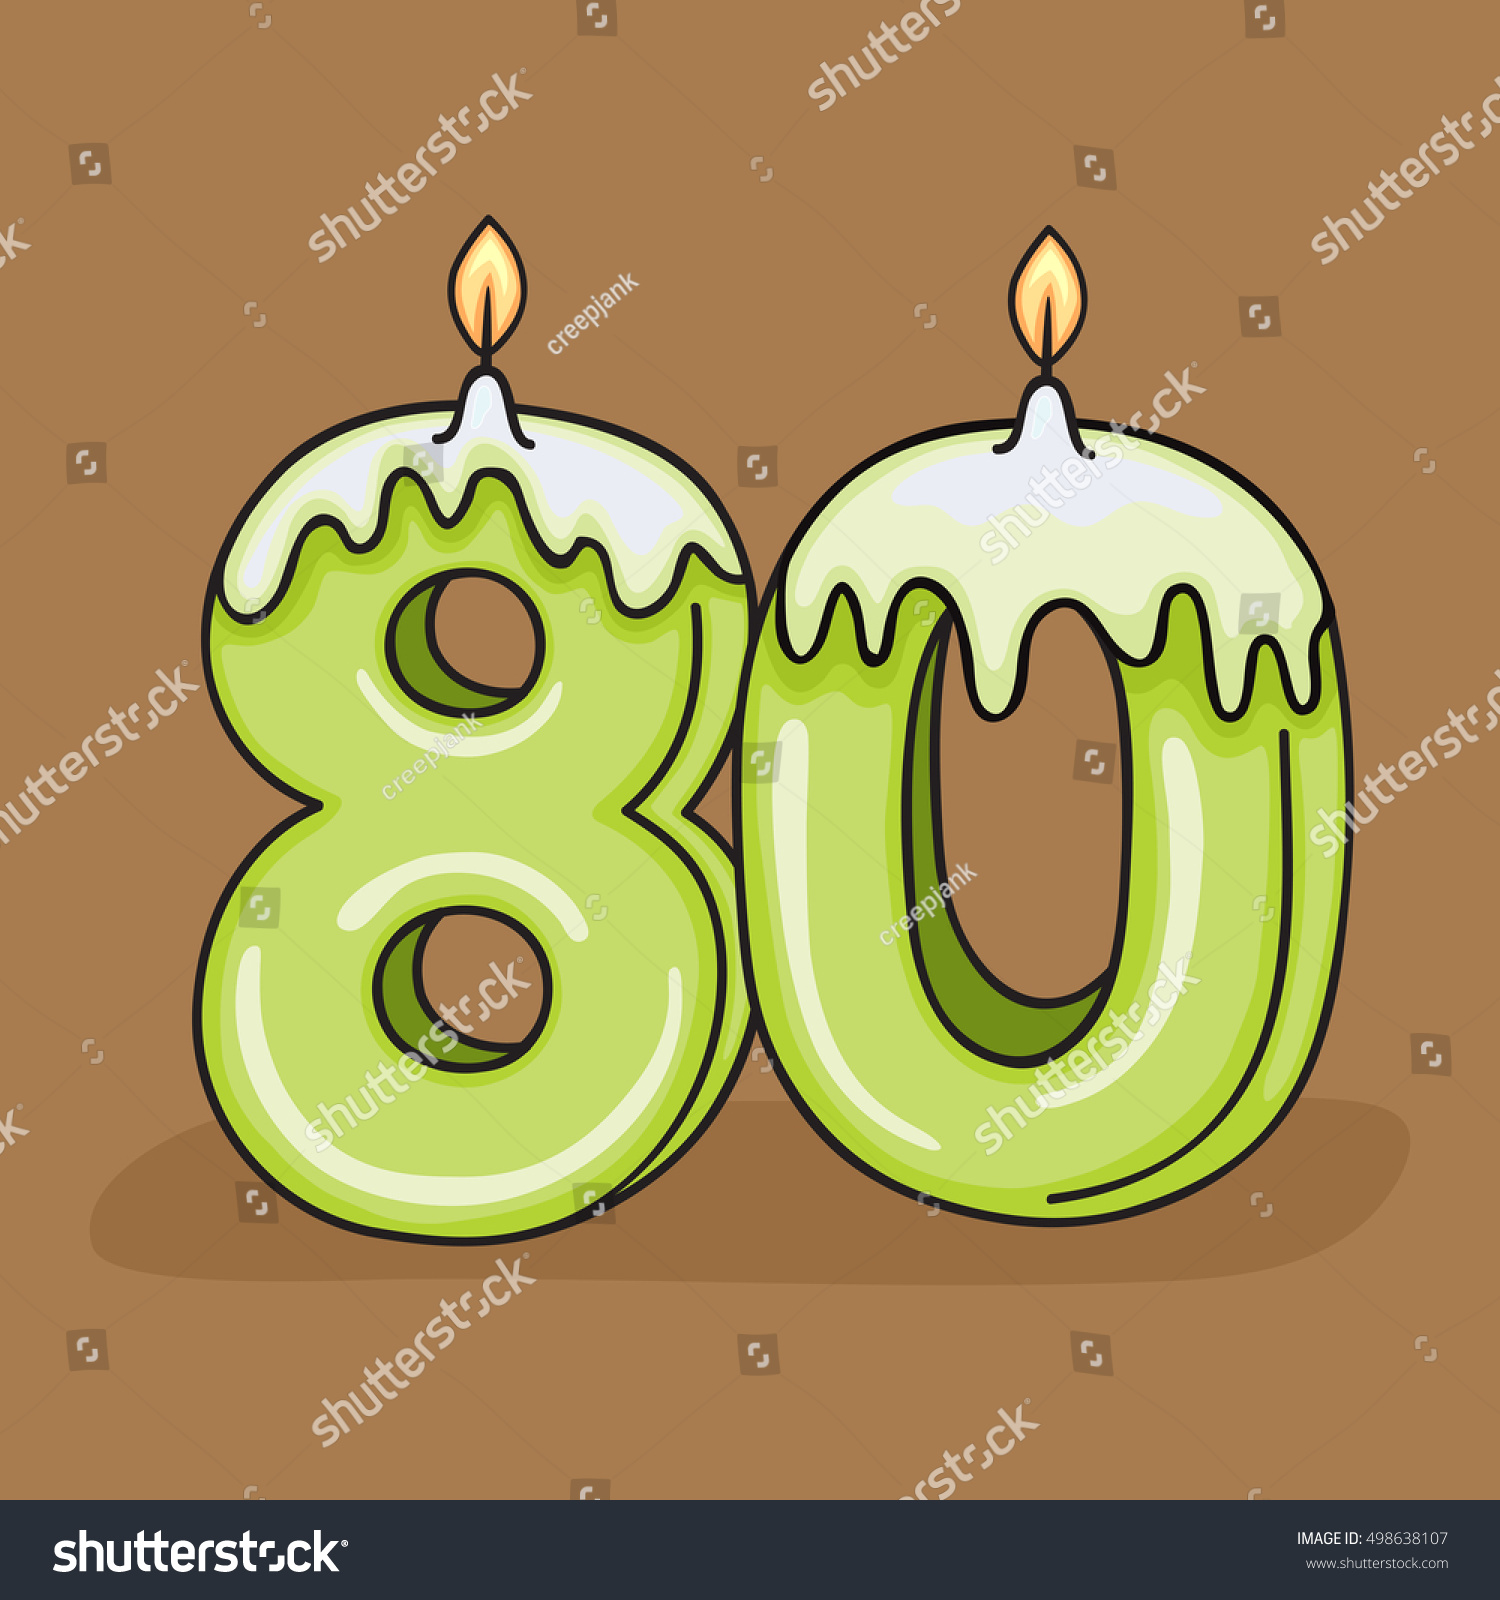 80th Birthday Candle Number Vector Design Stock Vector Royalty Free